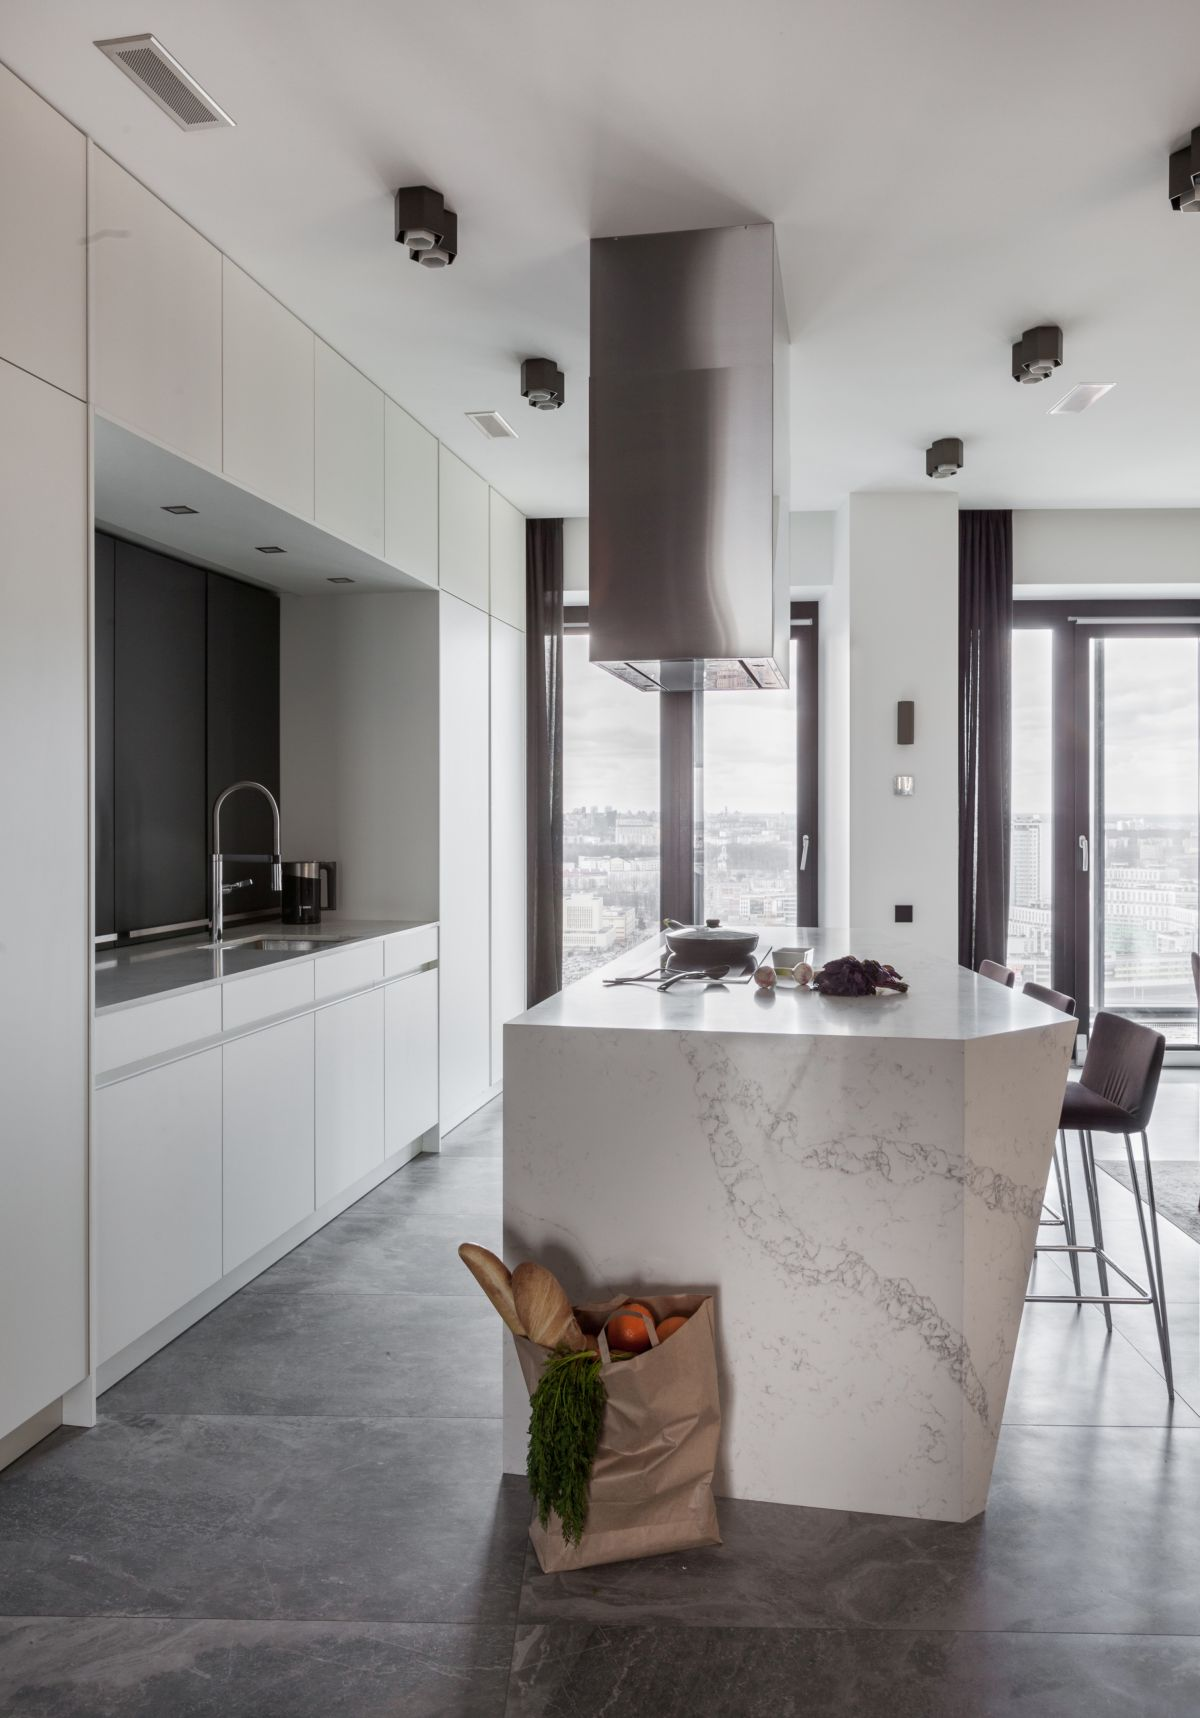 The kitchen is almost entirely white and has a massive and elegant island made from white marble